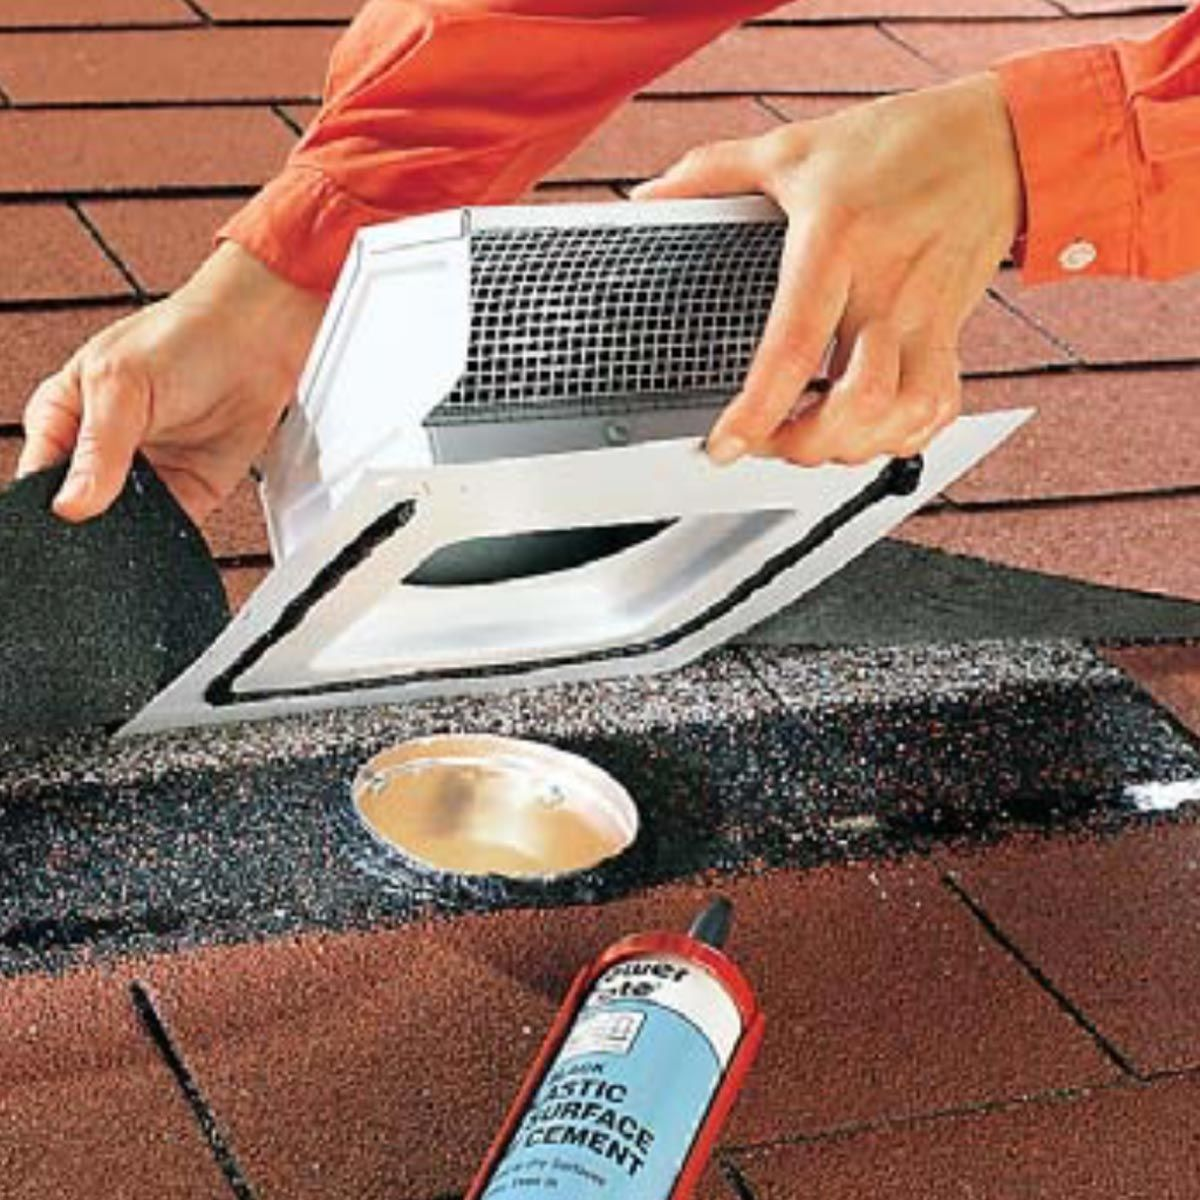 Venting Exhaust Fans Through The Roof Exhaust Fan Kitchen Exhaust Fan Roof Vents